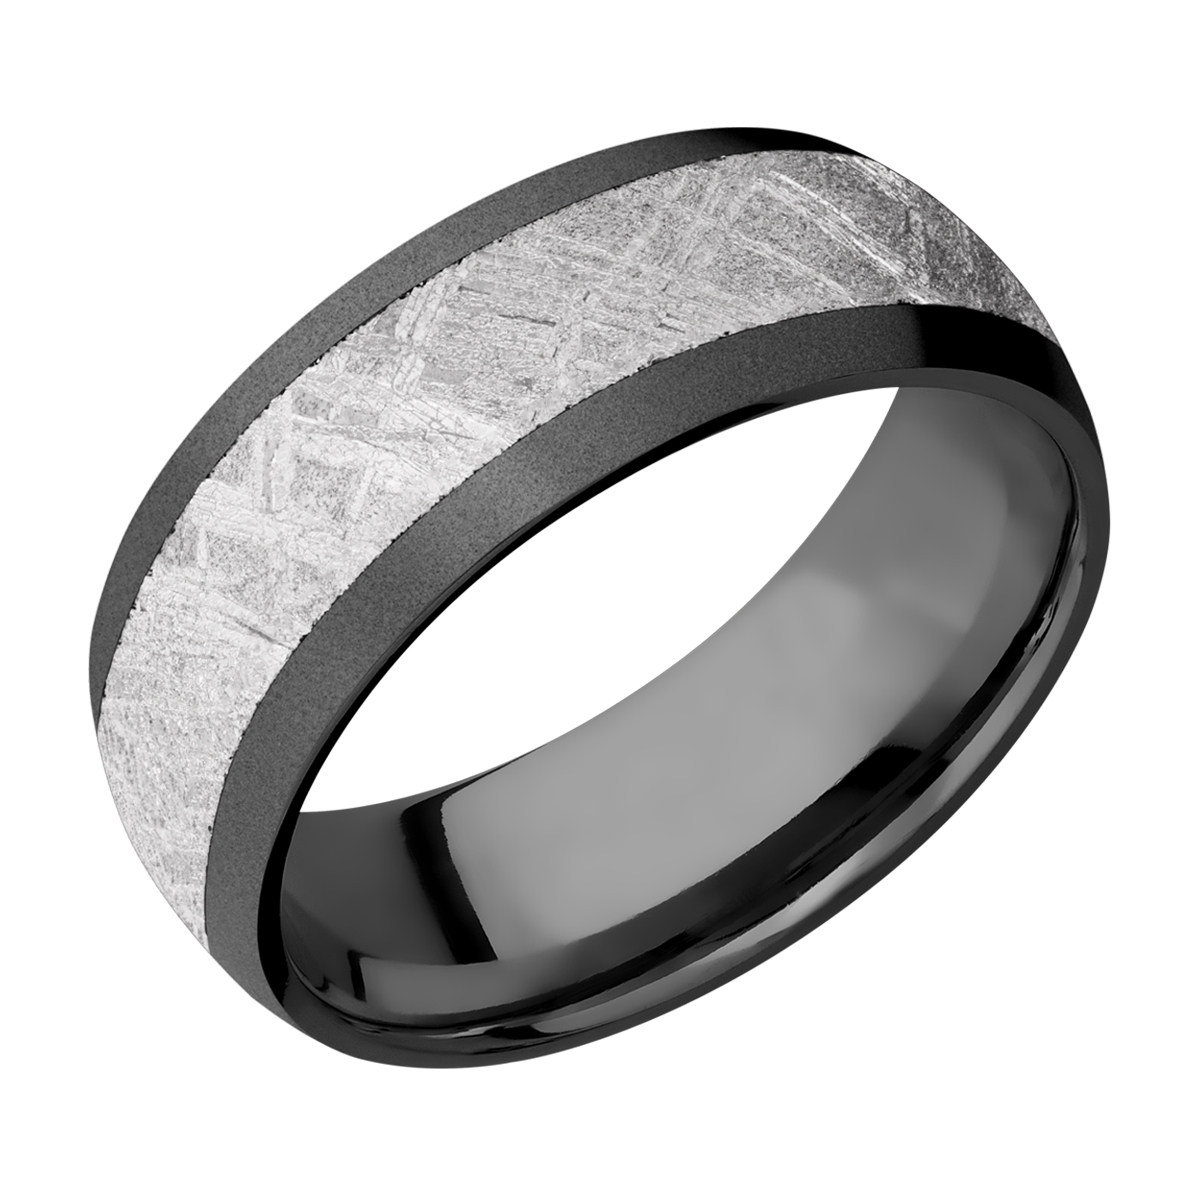 Lashbrook Z8D15/METEORITE Zirconium Wedding Ring or Band